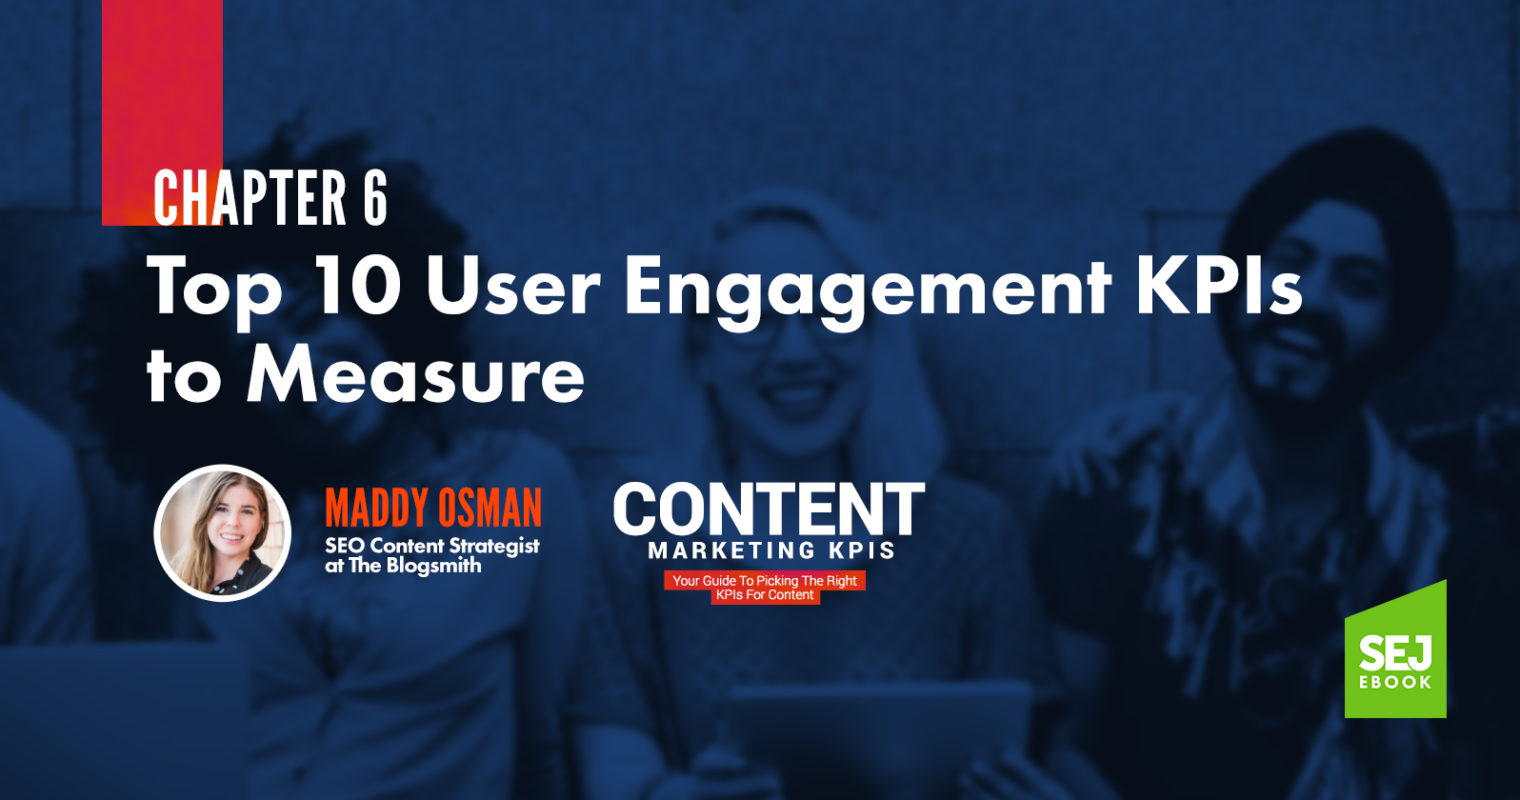 Top 10 User Engagement KPIs to Measure